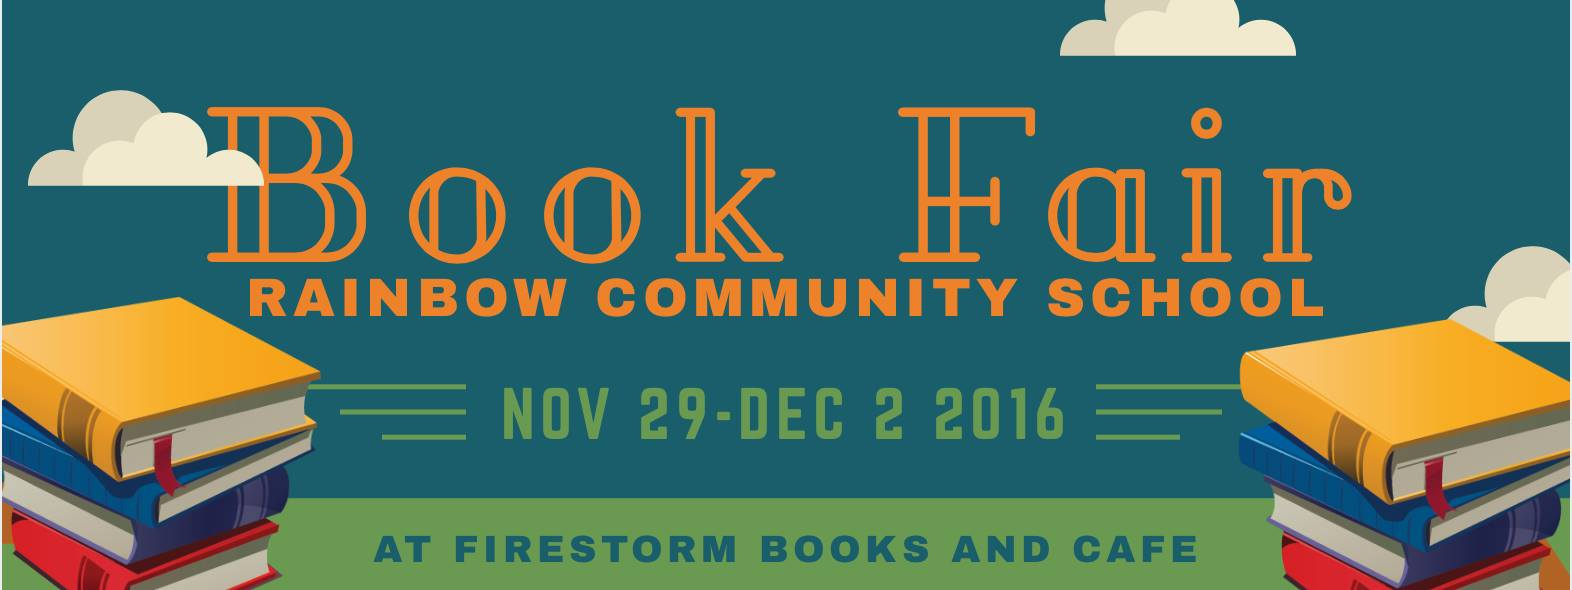 Rainbow Community School Book Fair at Firestorm